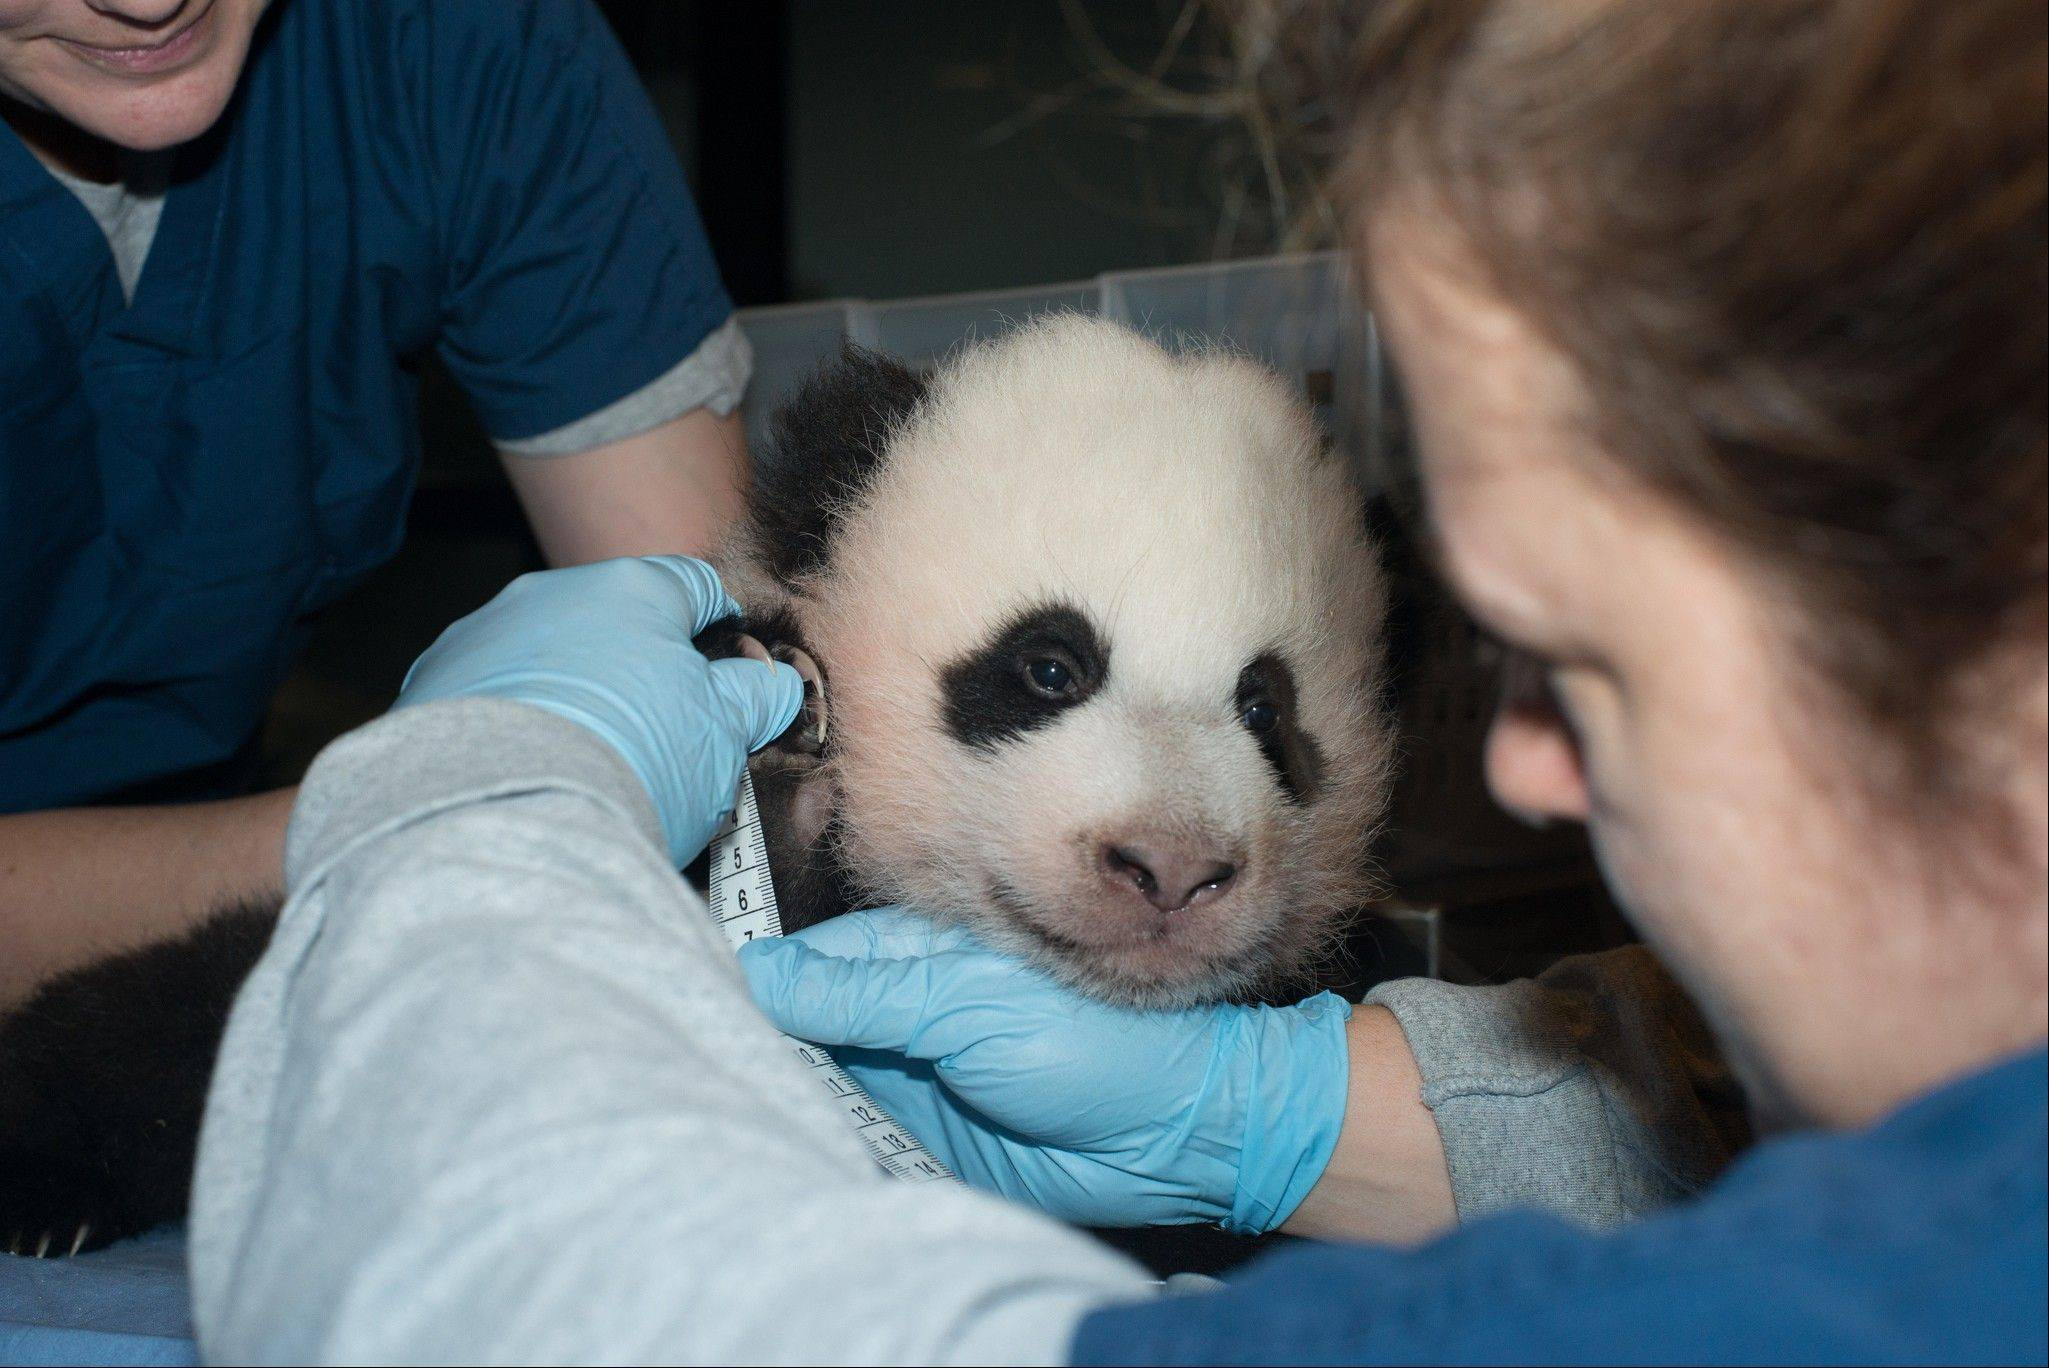 The National Zoo is naming its giant panda cub Bao Bao after receiving more than 123,000 votes from the public. The cub was born Aug. 23 and is only the second surviving panda cub born in Washington.